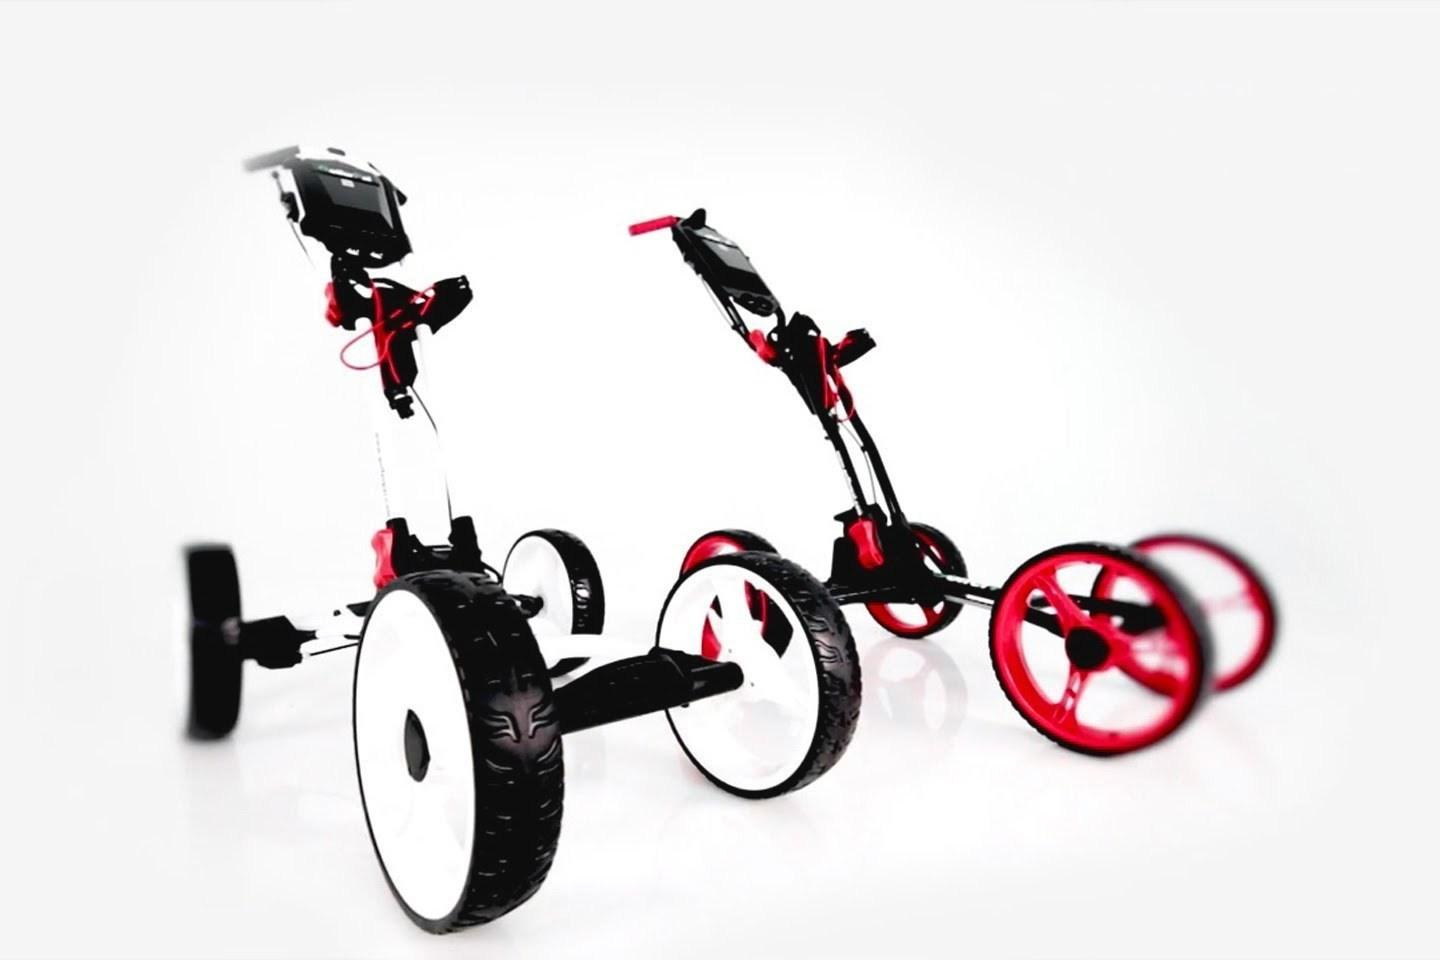 The EasyPal is a nice-looking golf trolley in its own right